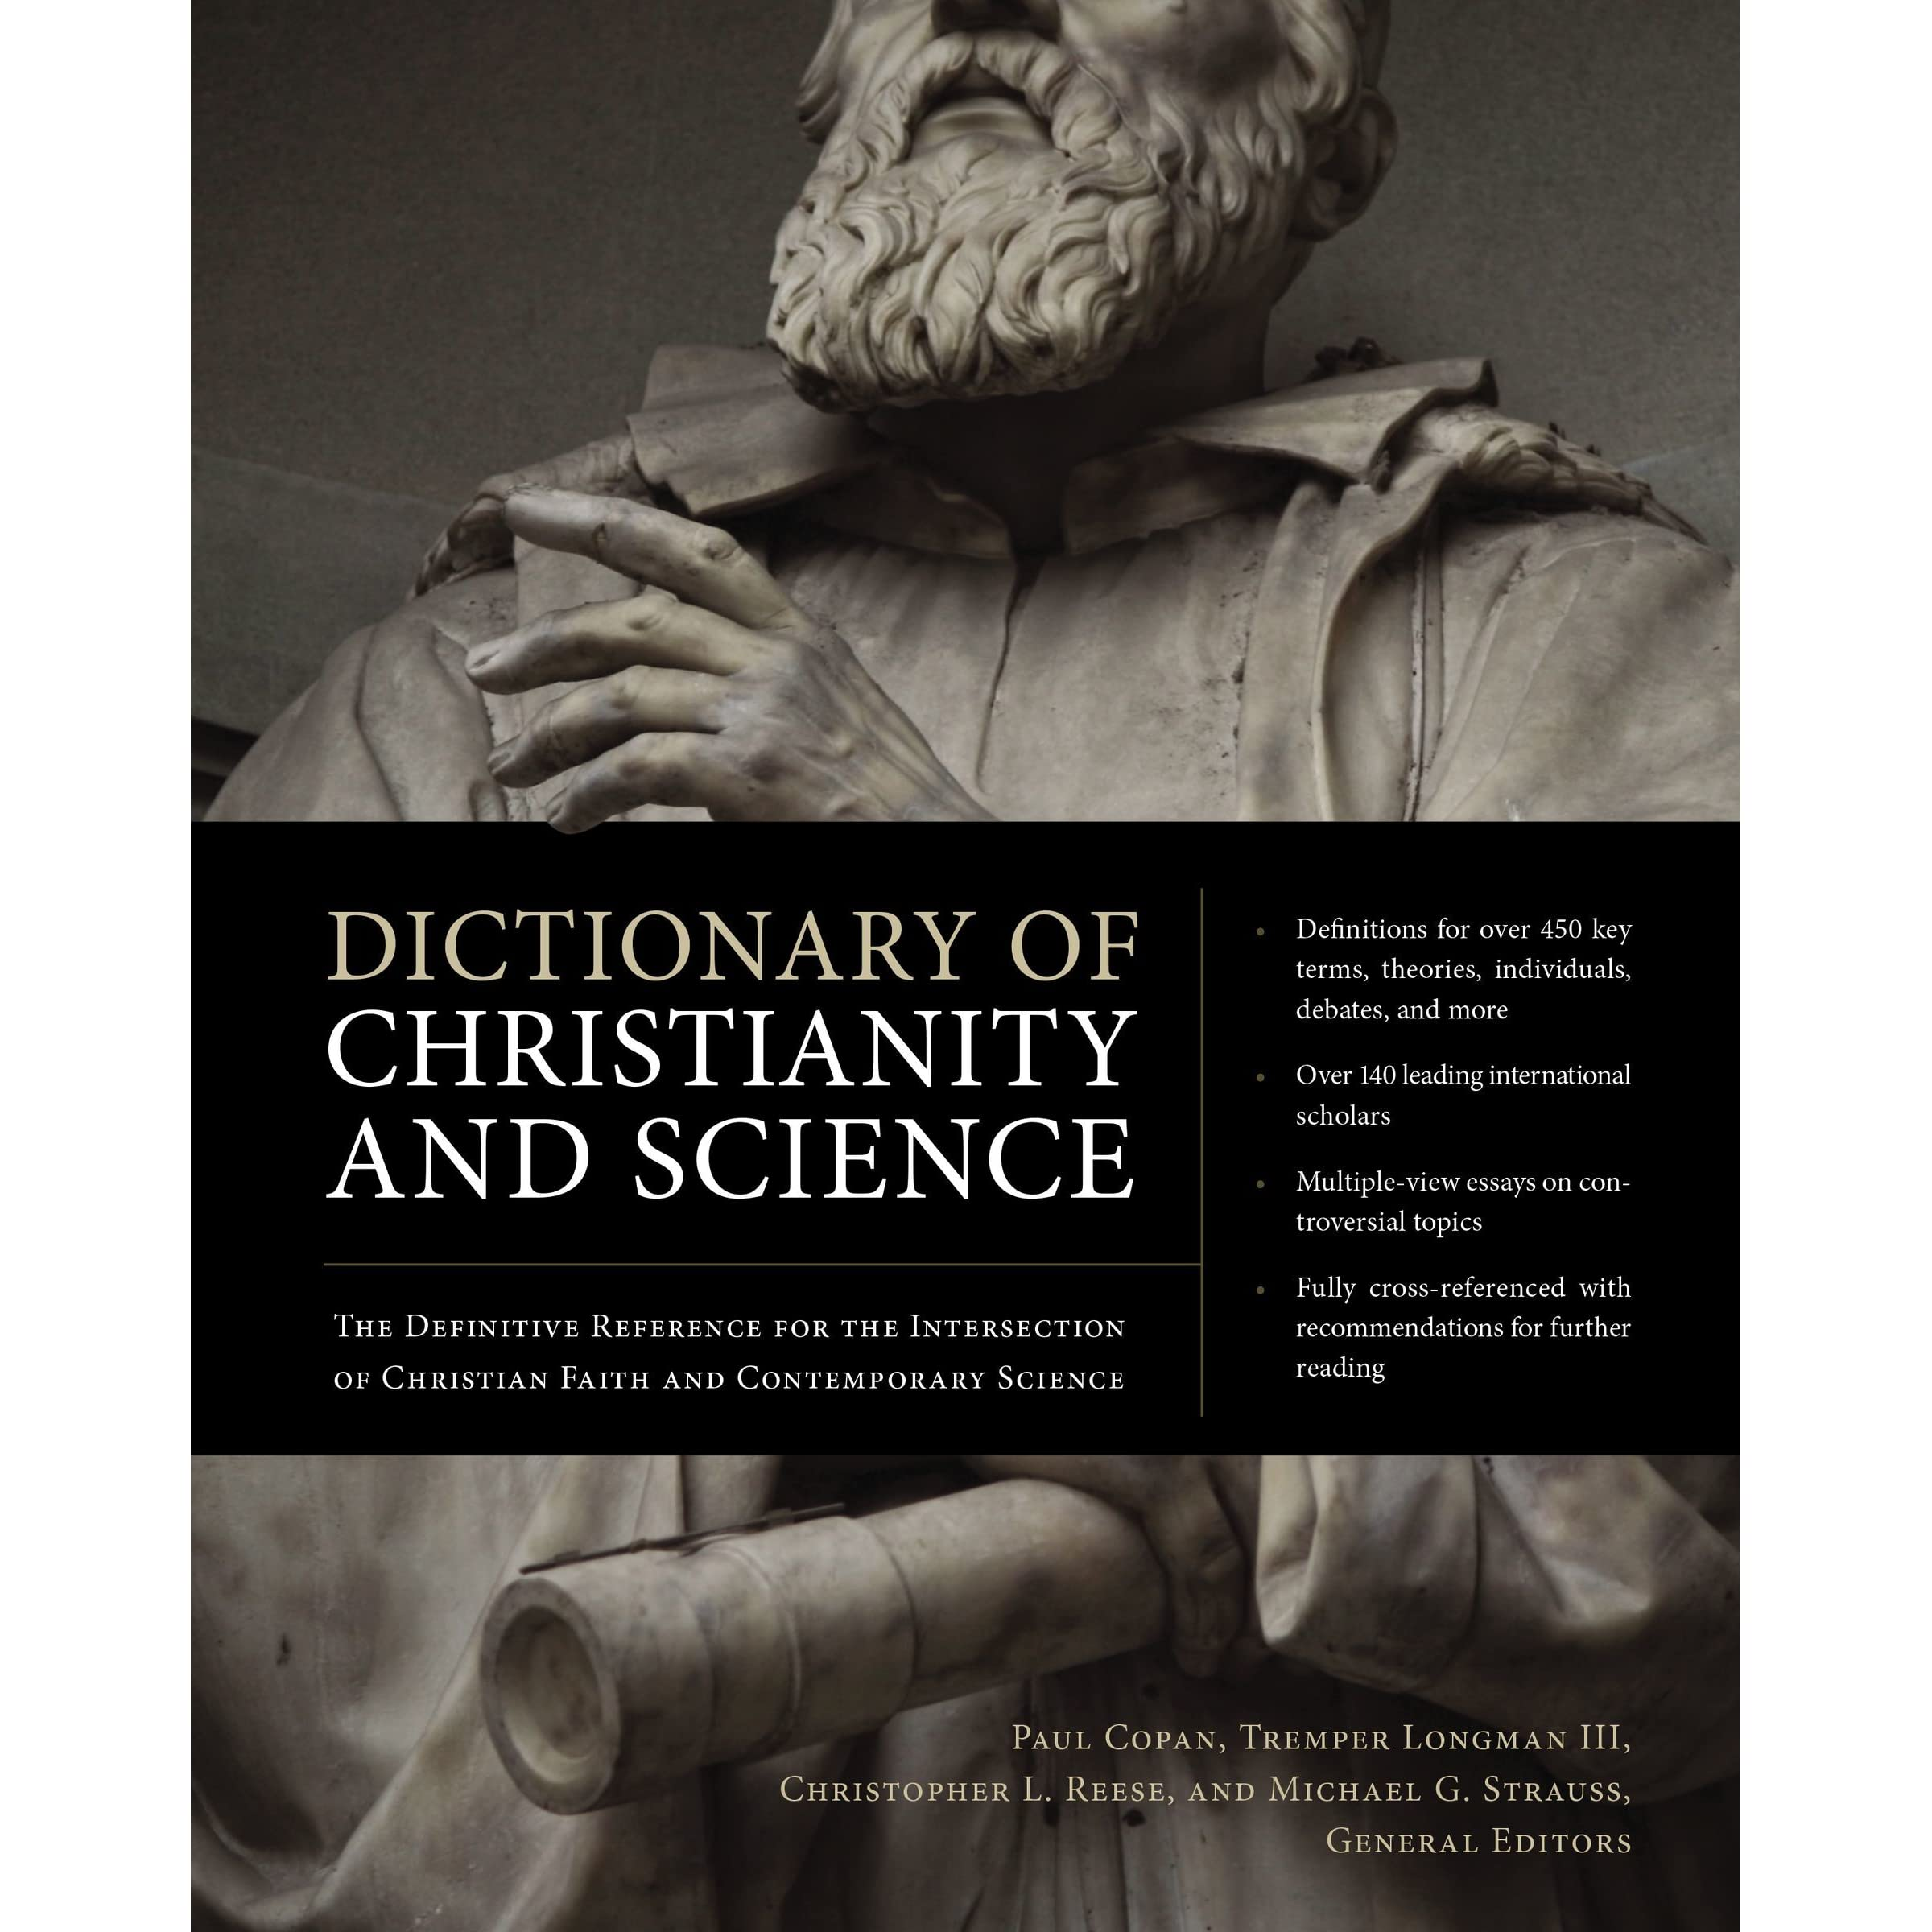 dictionary of christianity and science the definitive reference  dictionary of christianity and science the definitive reference for the intersection of christian faith and contemporary science by paul copan